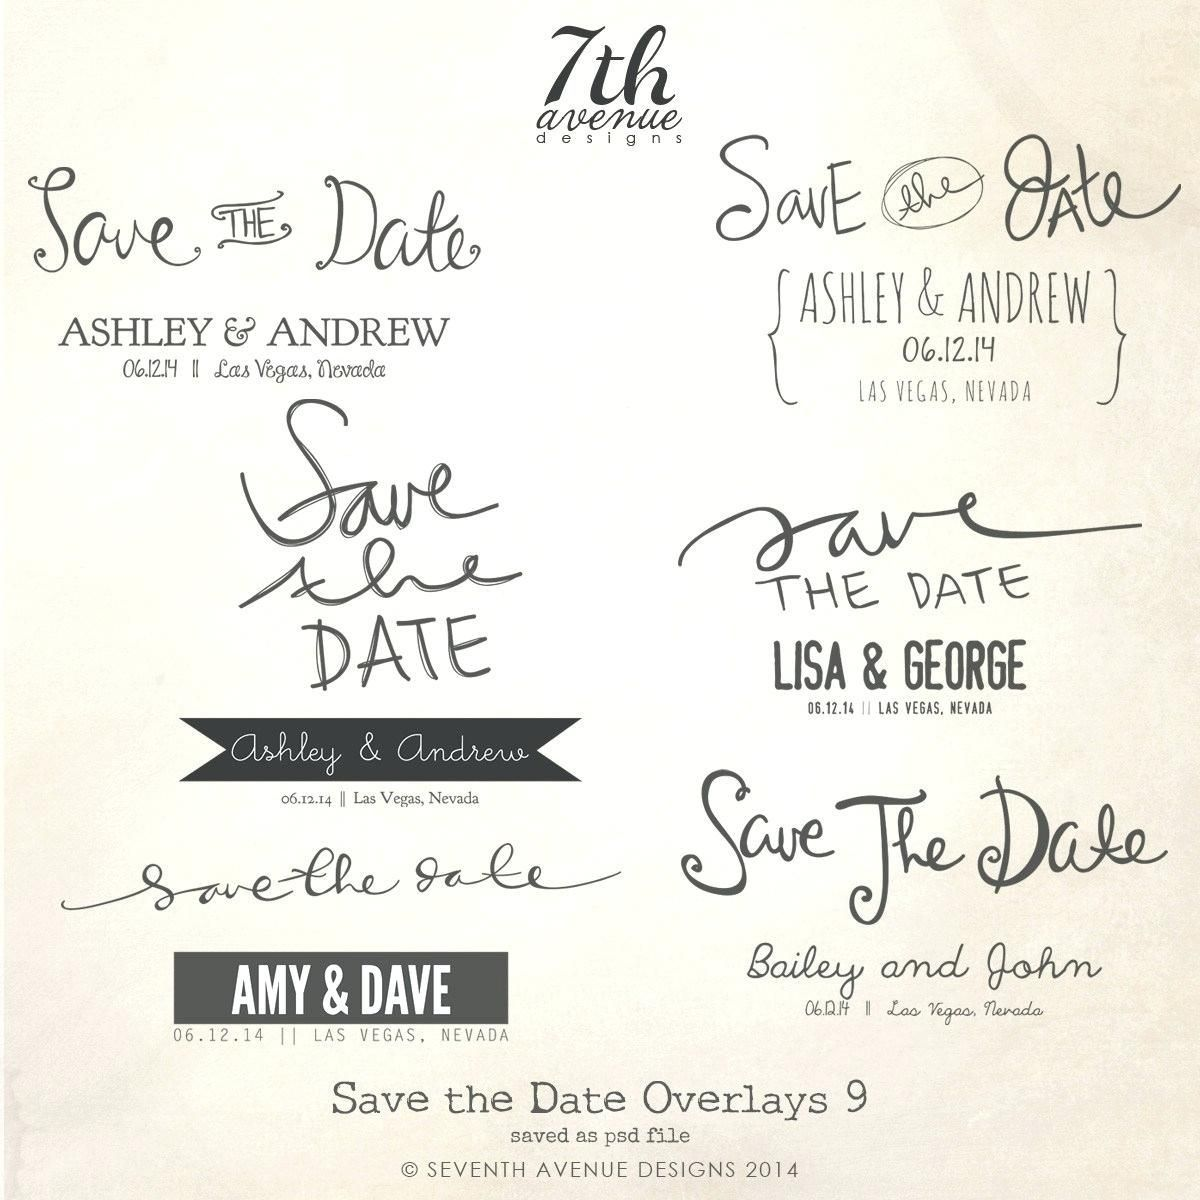 006 Fantastic Save The Date Template Word Image  Free Customizable For Holiday PartyFull